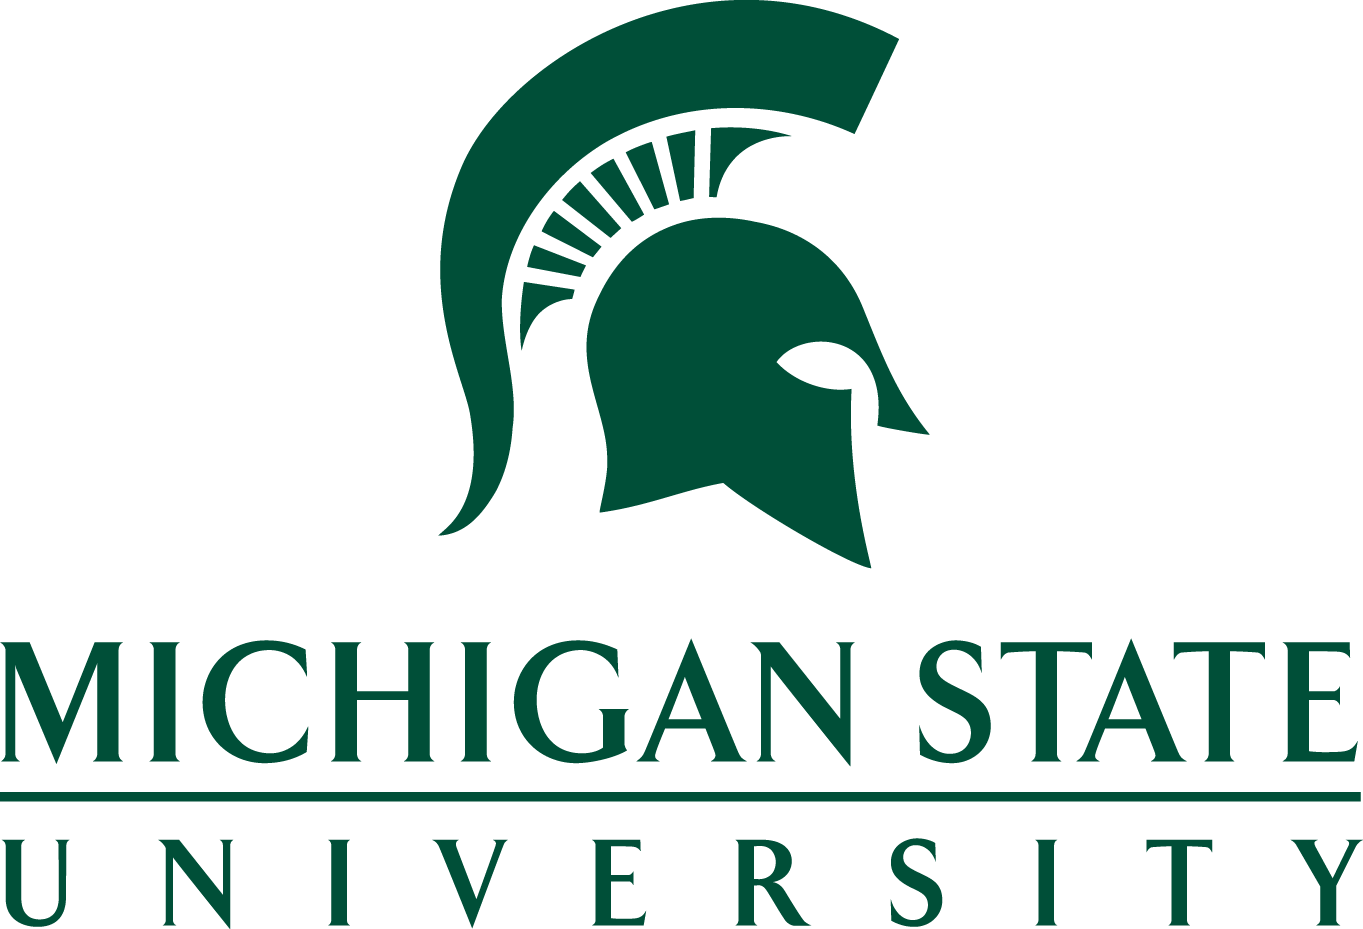 Michigan-State-University-logo_stacked.png